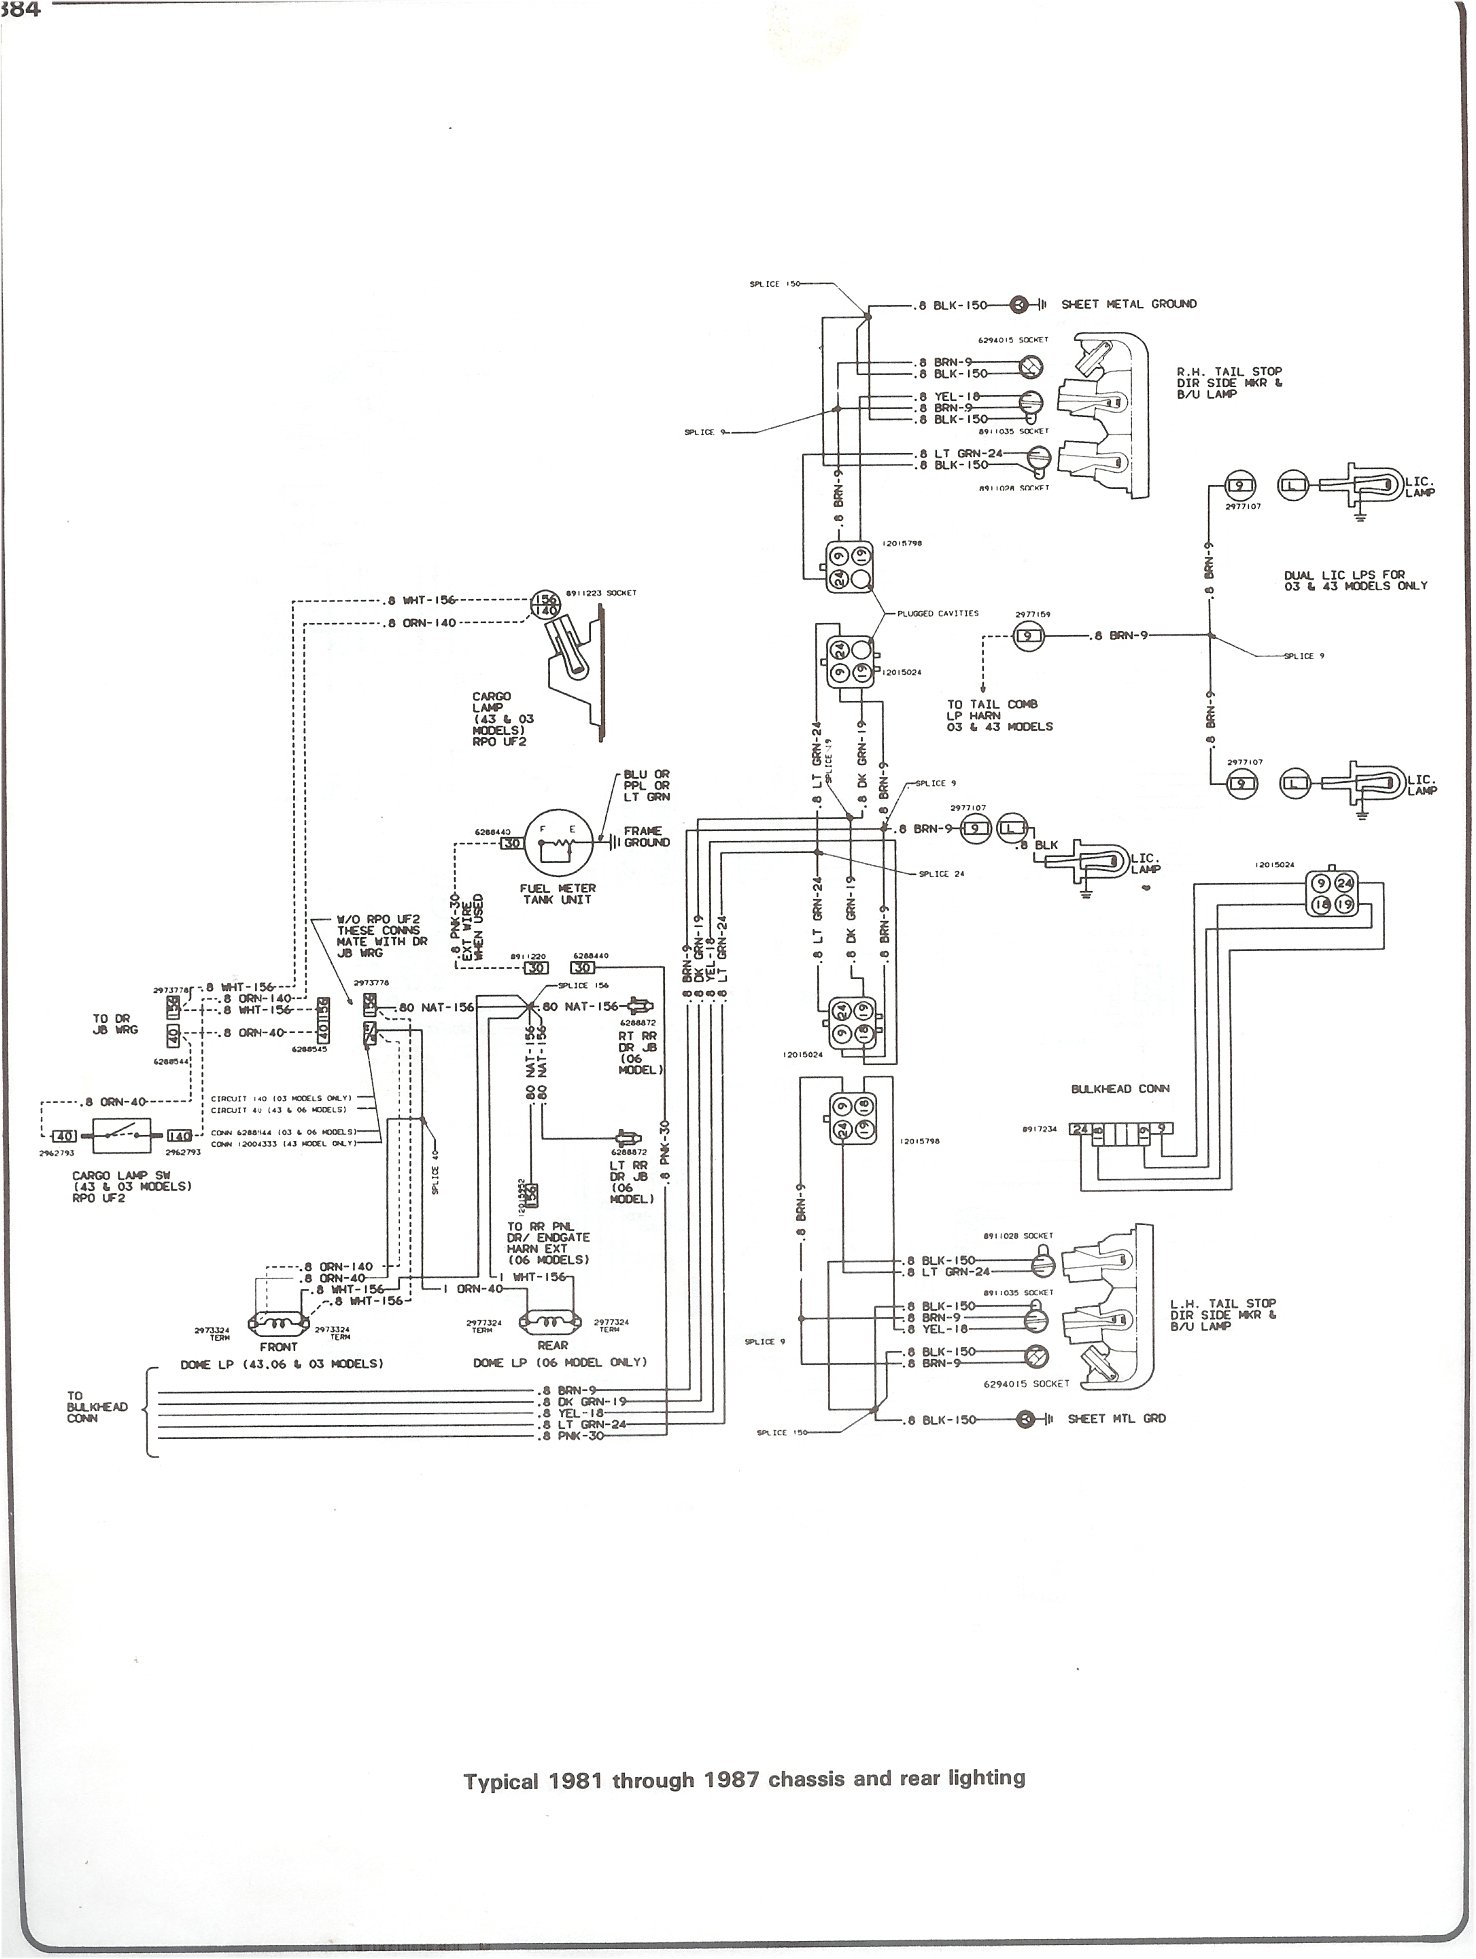 81 87_chass_rr_light wiring diagram for chevy c10 1981 to 1987 readingrat net 1968 Chevy C10 Wiring-Diagram at bayanpartner.co